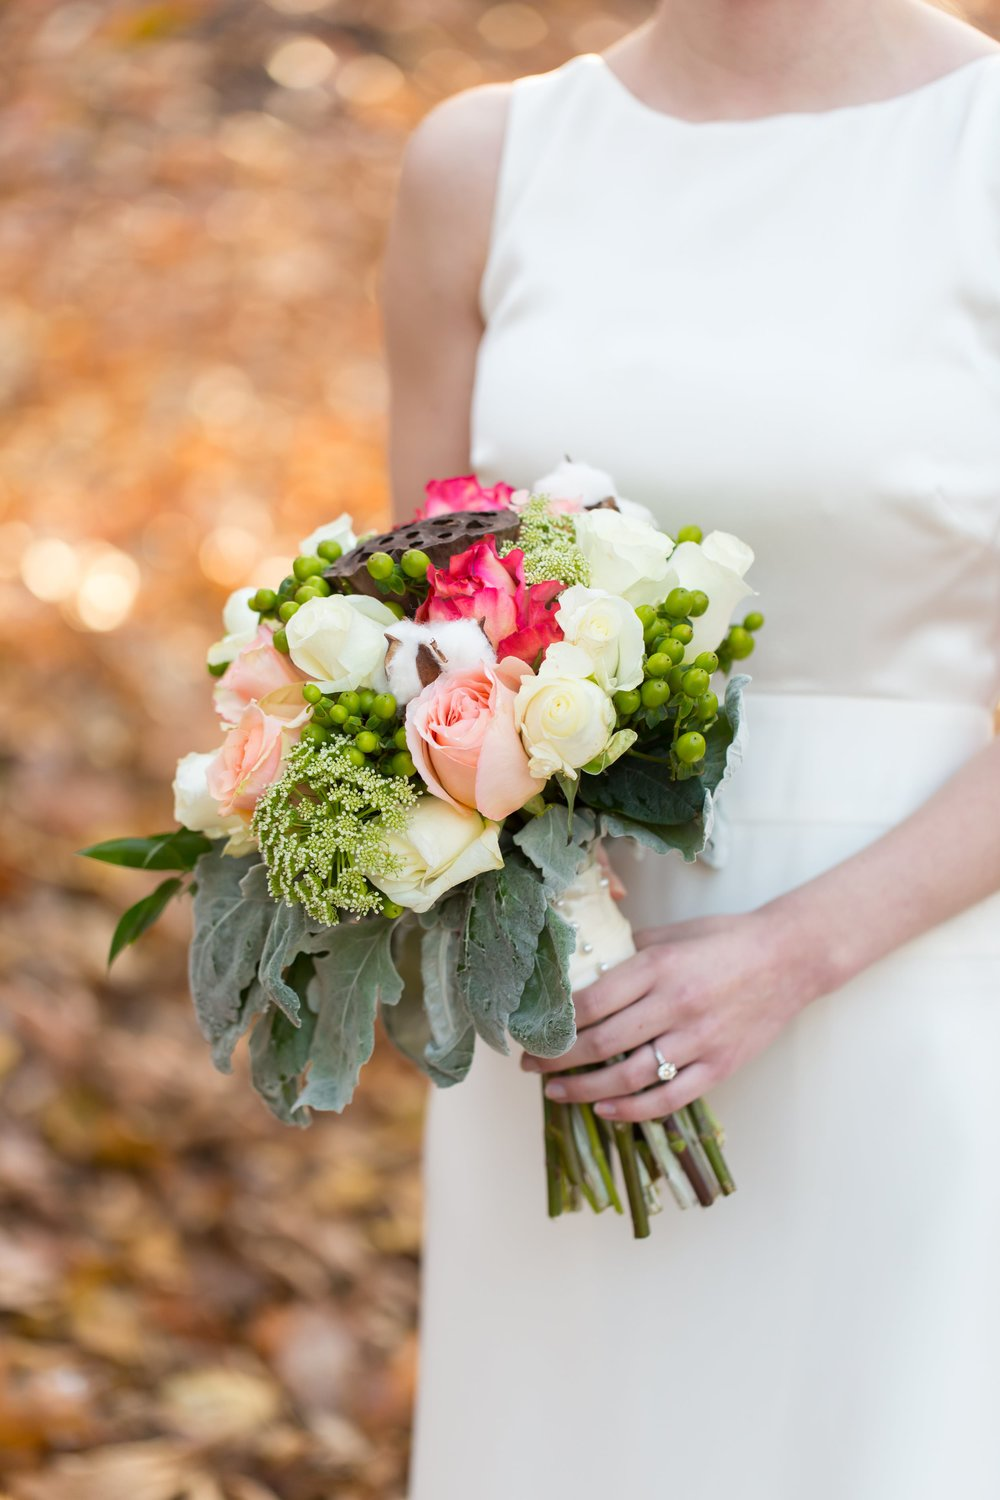 Jeff and Laura got married on Jeff's family cotton farm, so of course her Southern bouquet featured fresh cotton! I love the texture and warm tones of her bouquet. To view more from Jeff and Laura's  intimate Alabama farm wedding, click here .